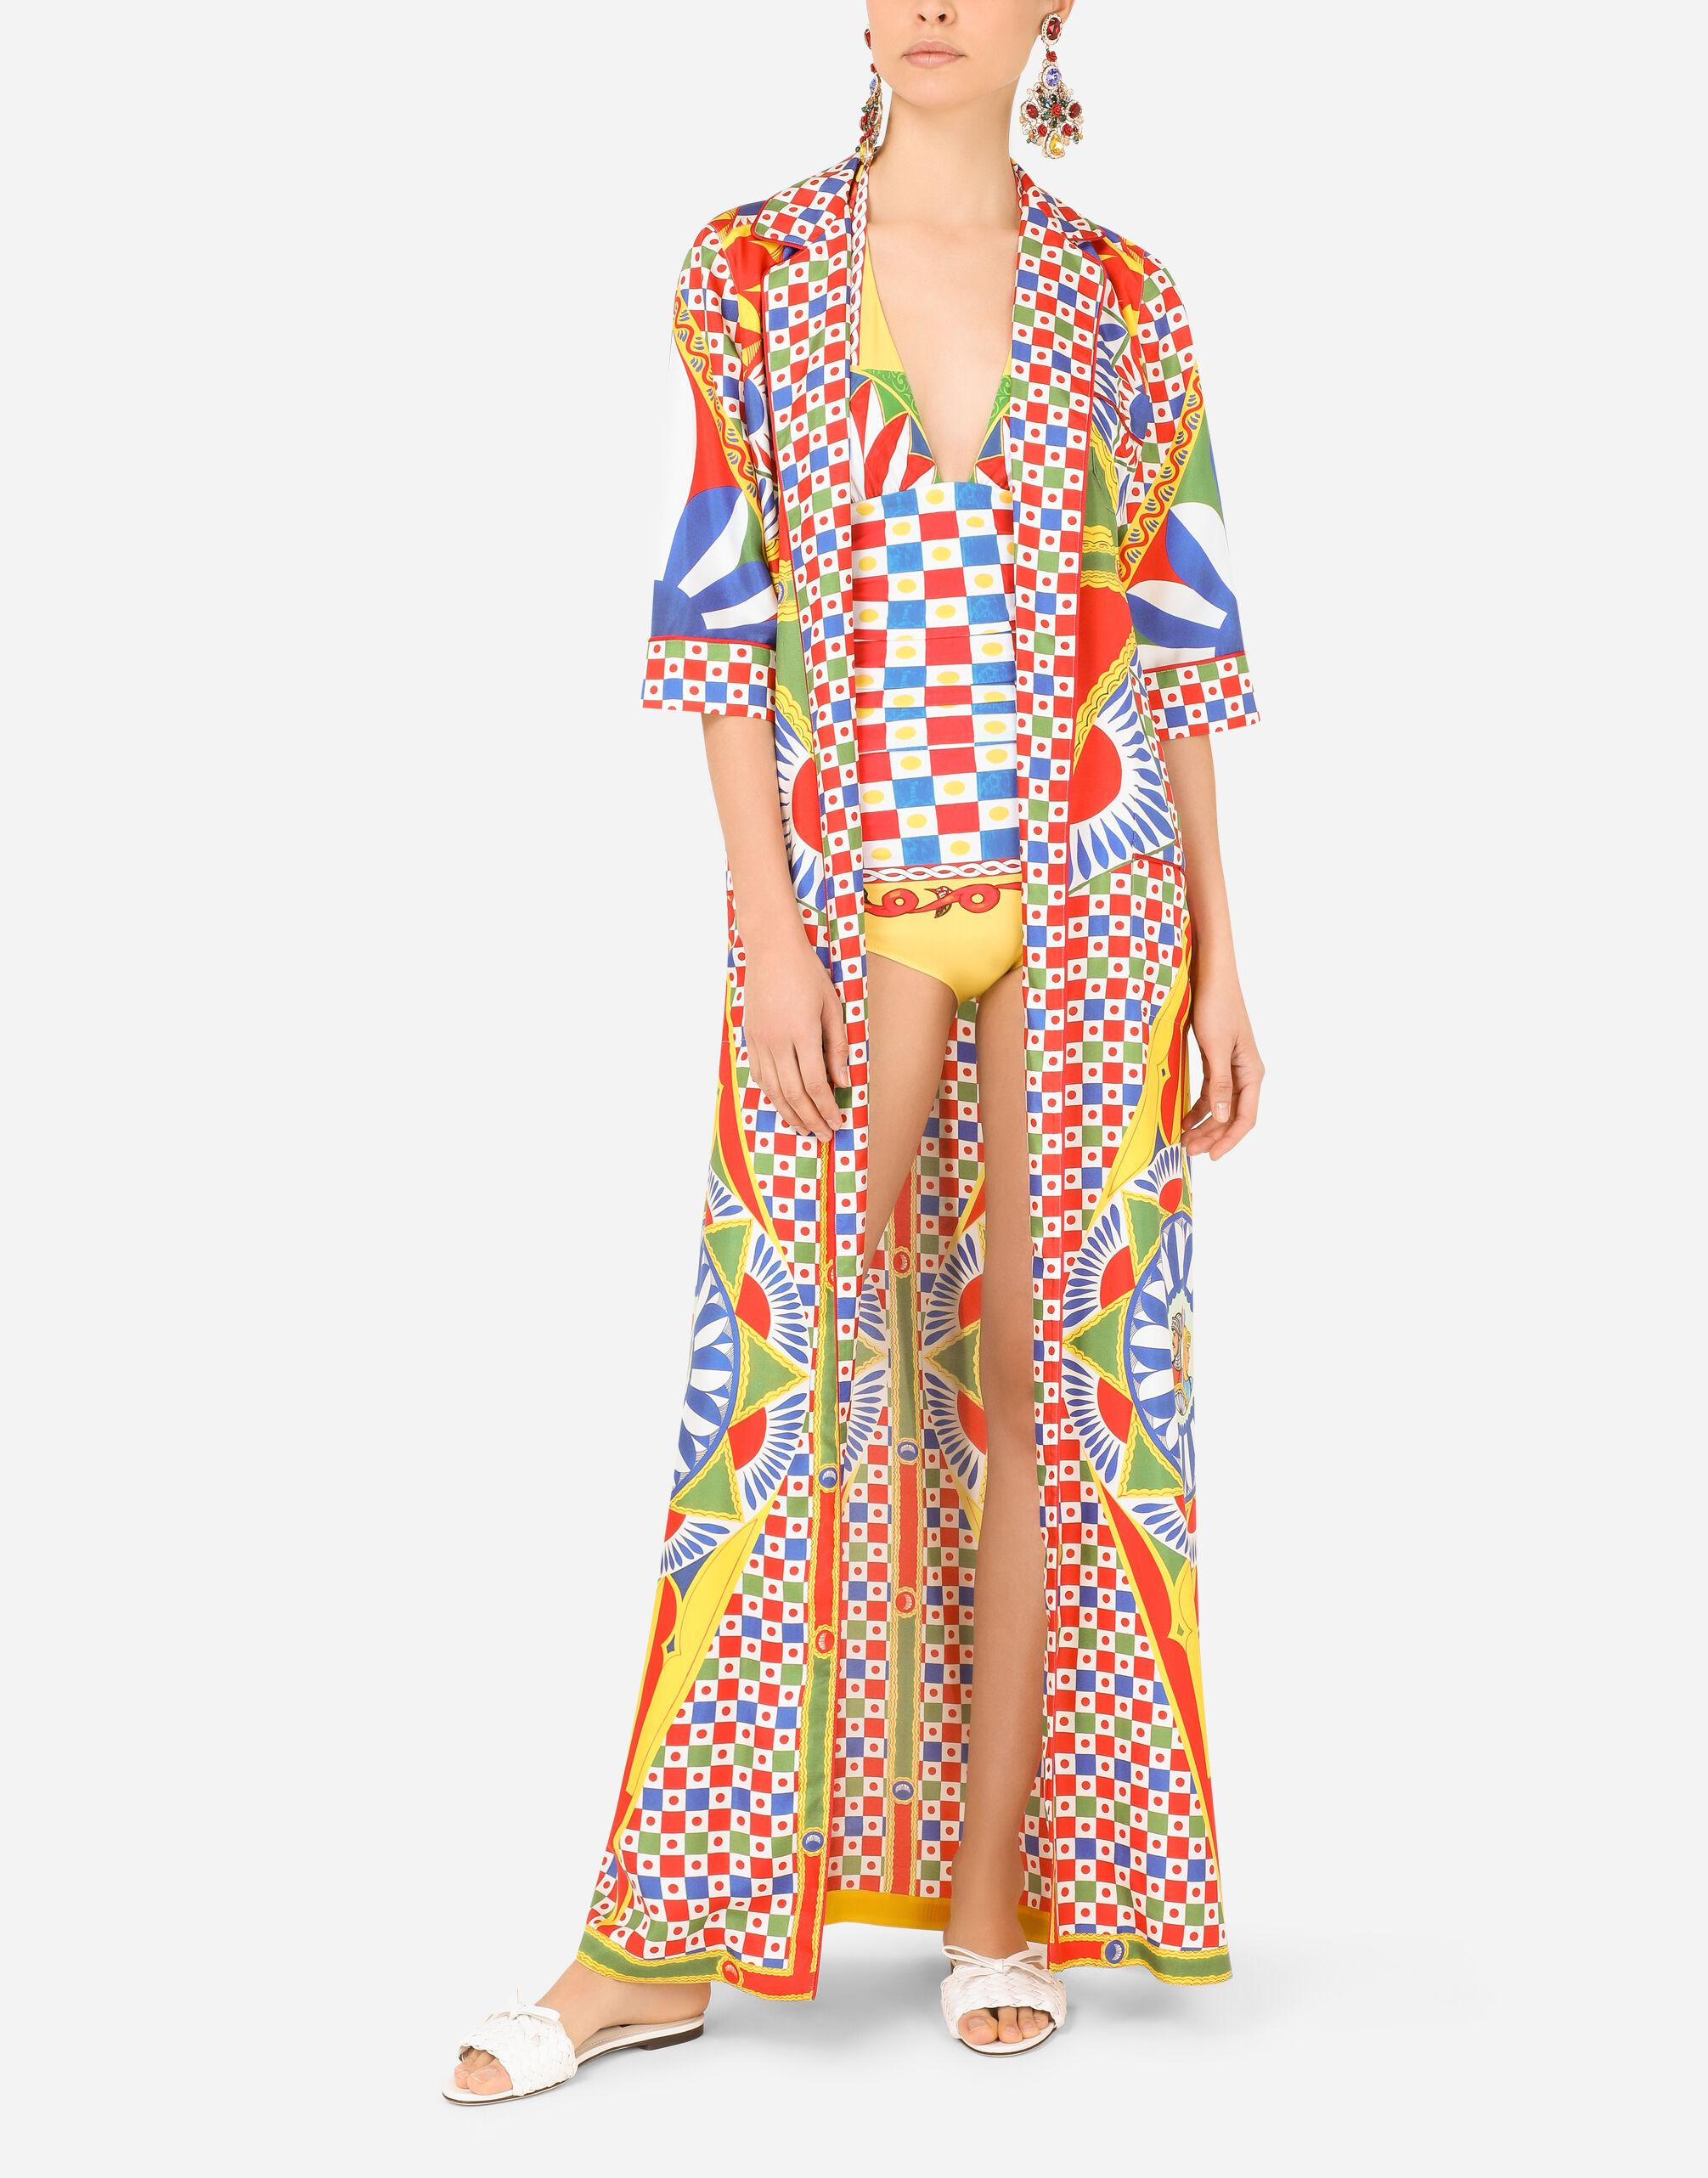 Carretto-print one-piece swimsuit with plunging neckline